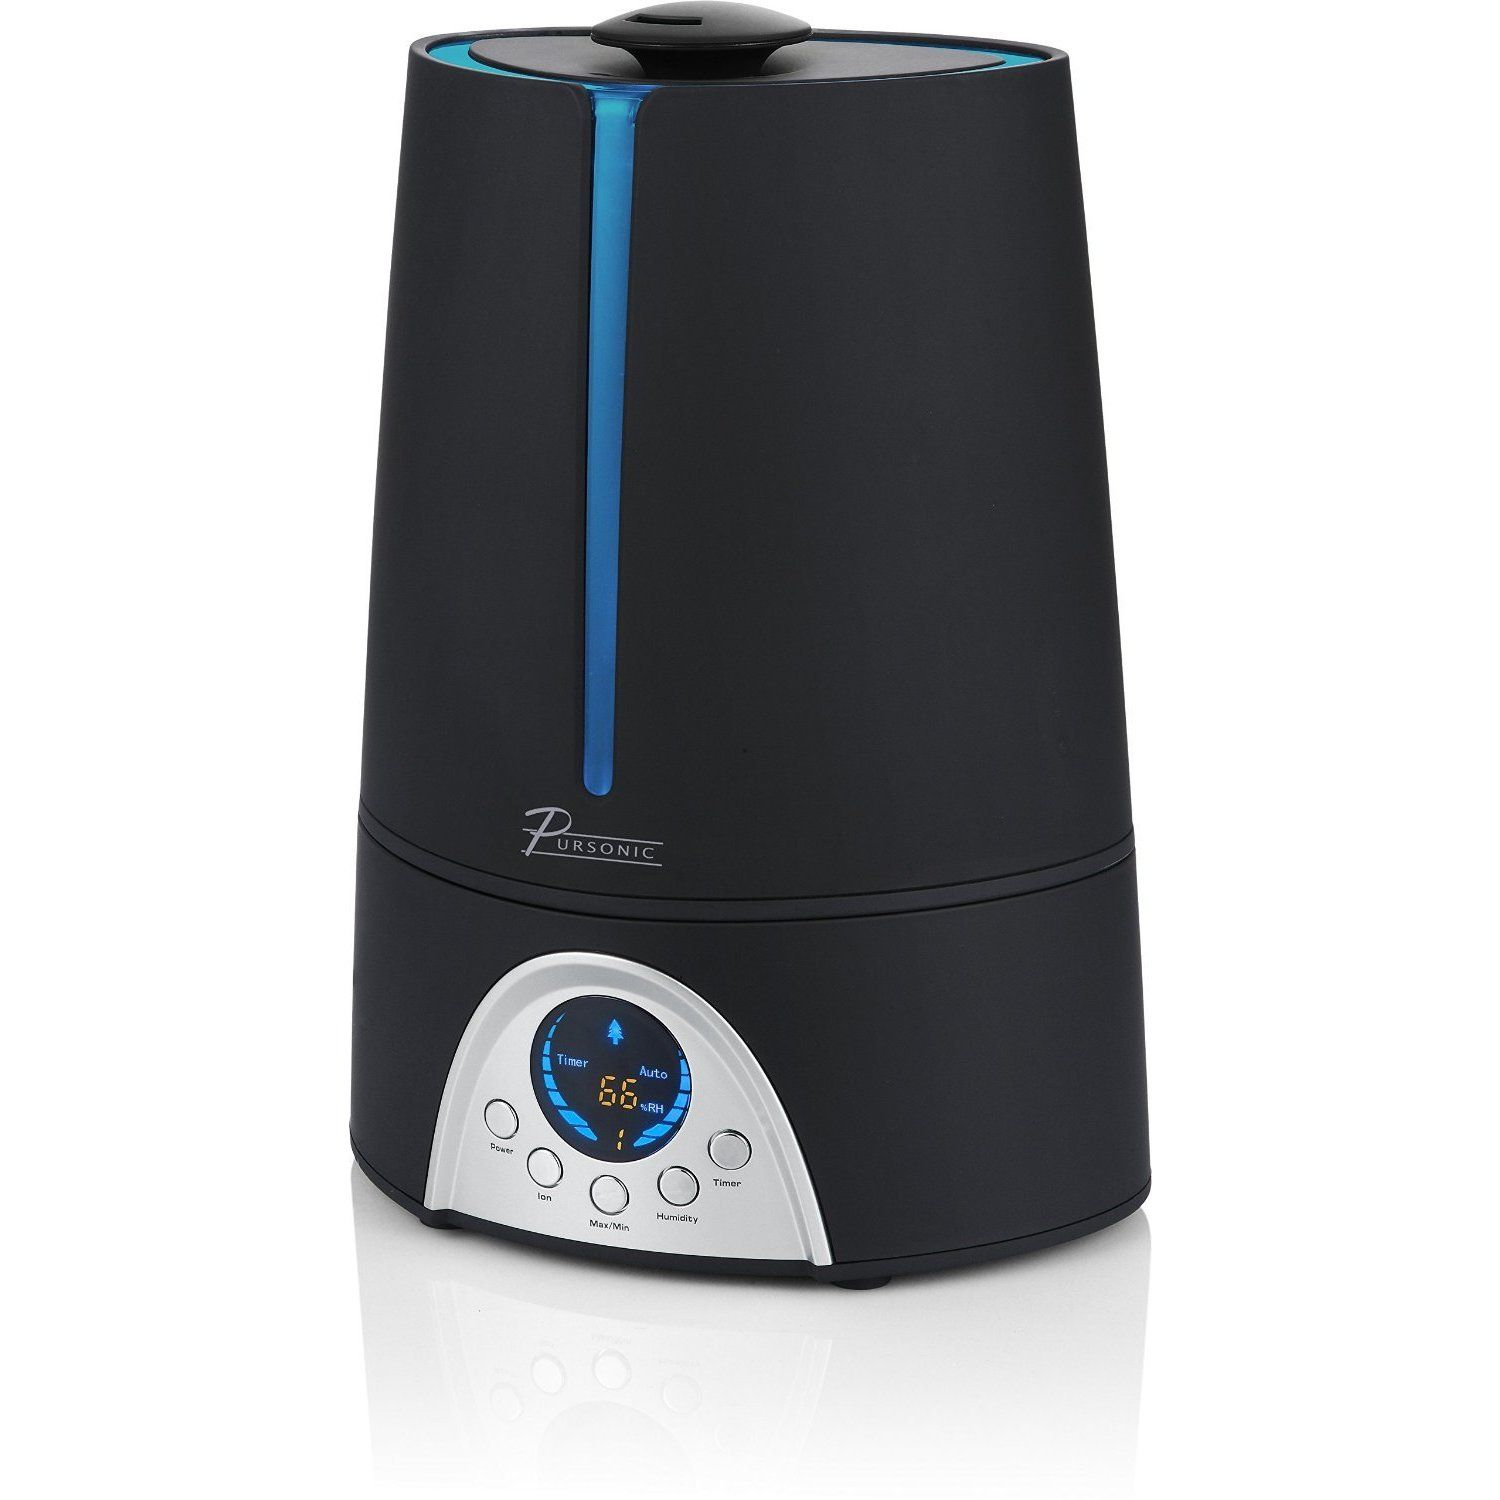 Pursonic Hm310 Ultrasonic Cool Mist Humidifier With Built In Ionizer And Led Screen With Digital Humidity Display Ultrasonic Cool Mist Humidifier Humidifier Cool Mist Humidifier